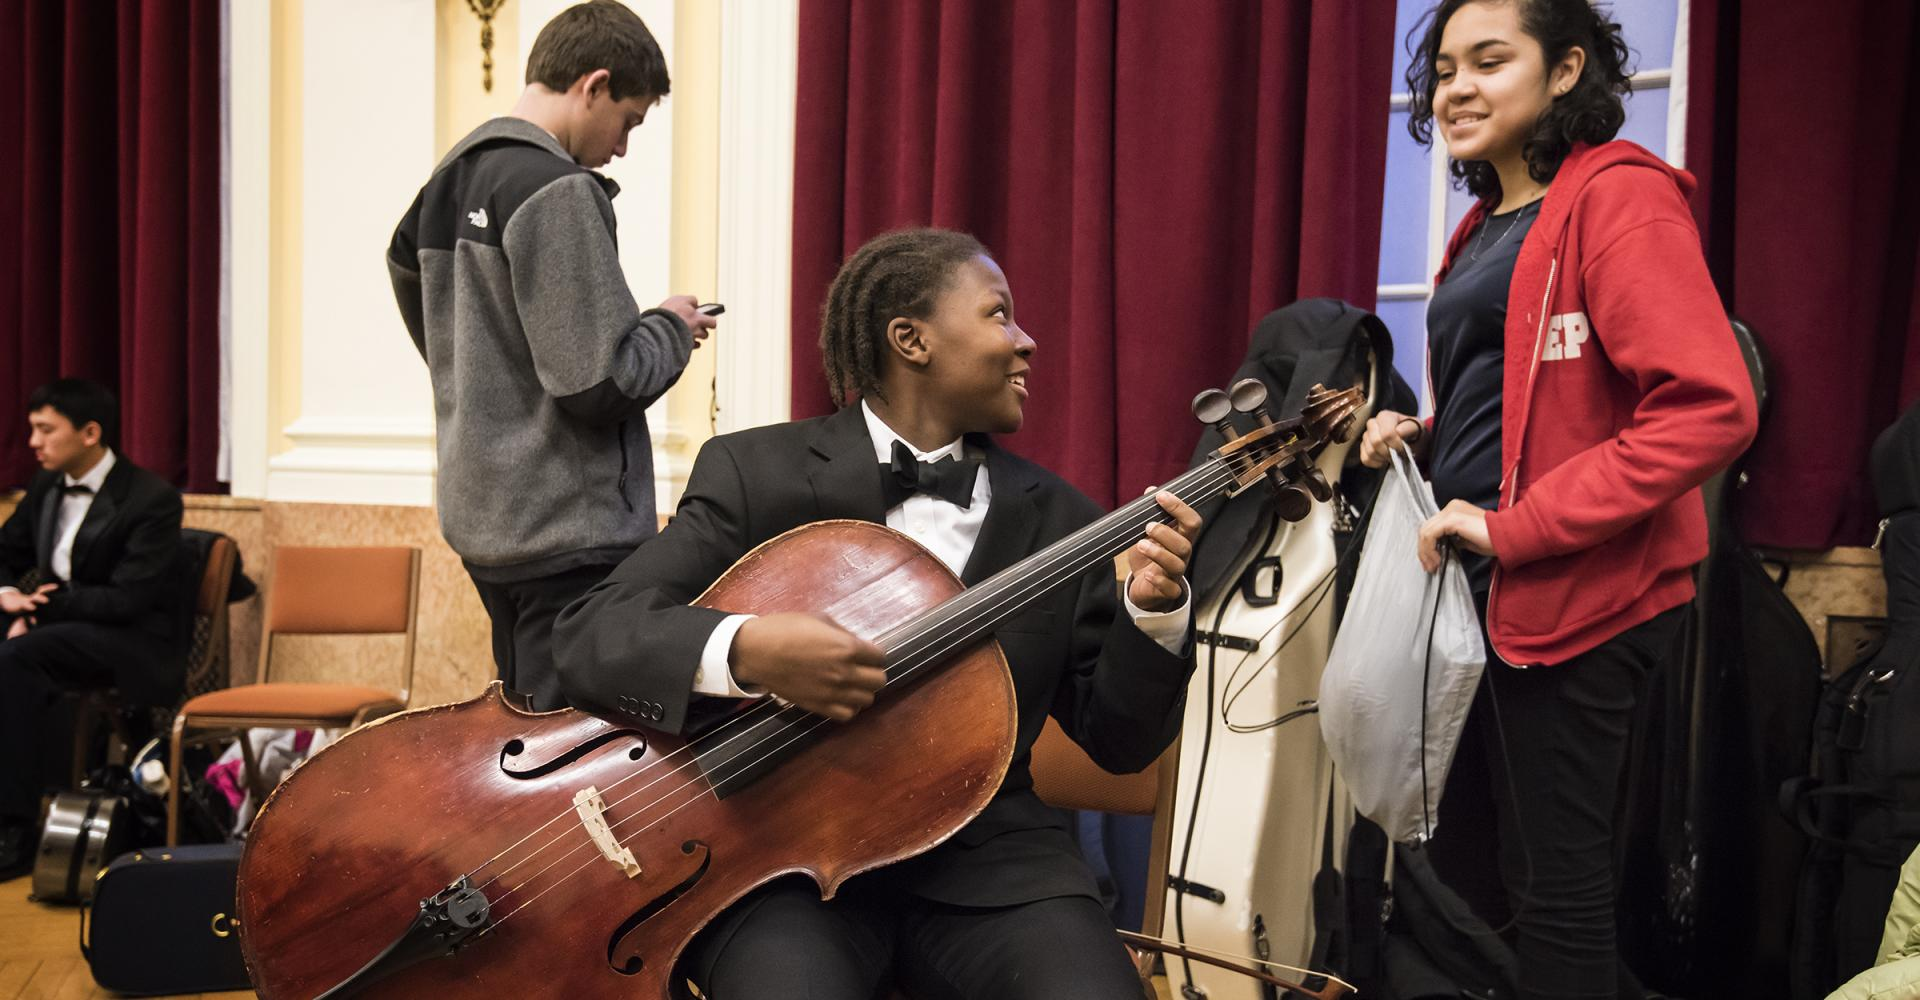 Cellists having fun before a concert